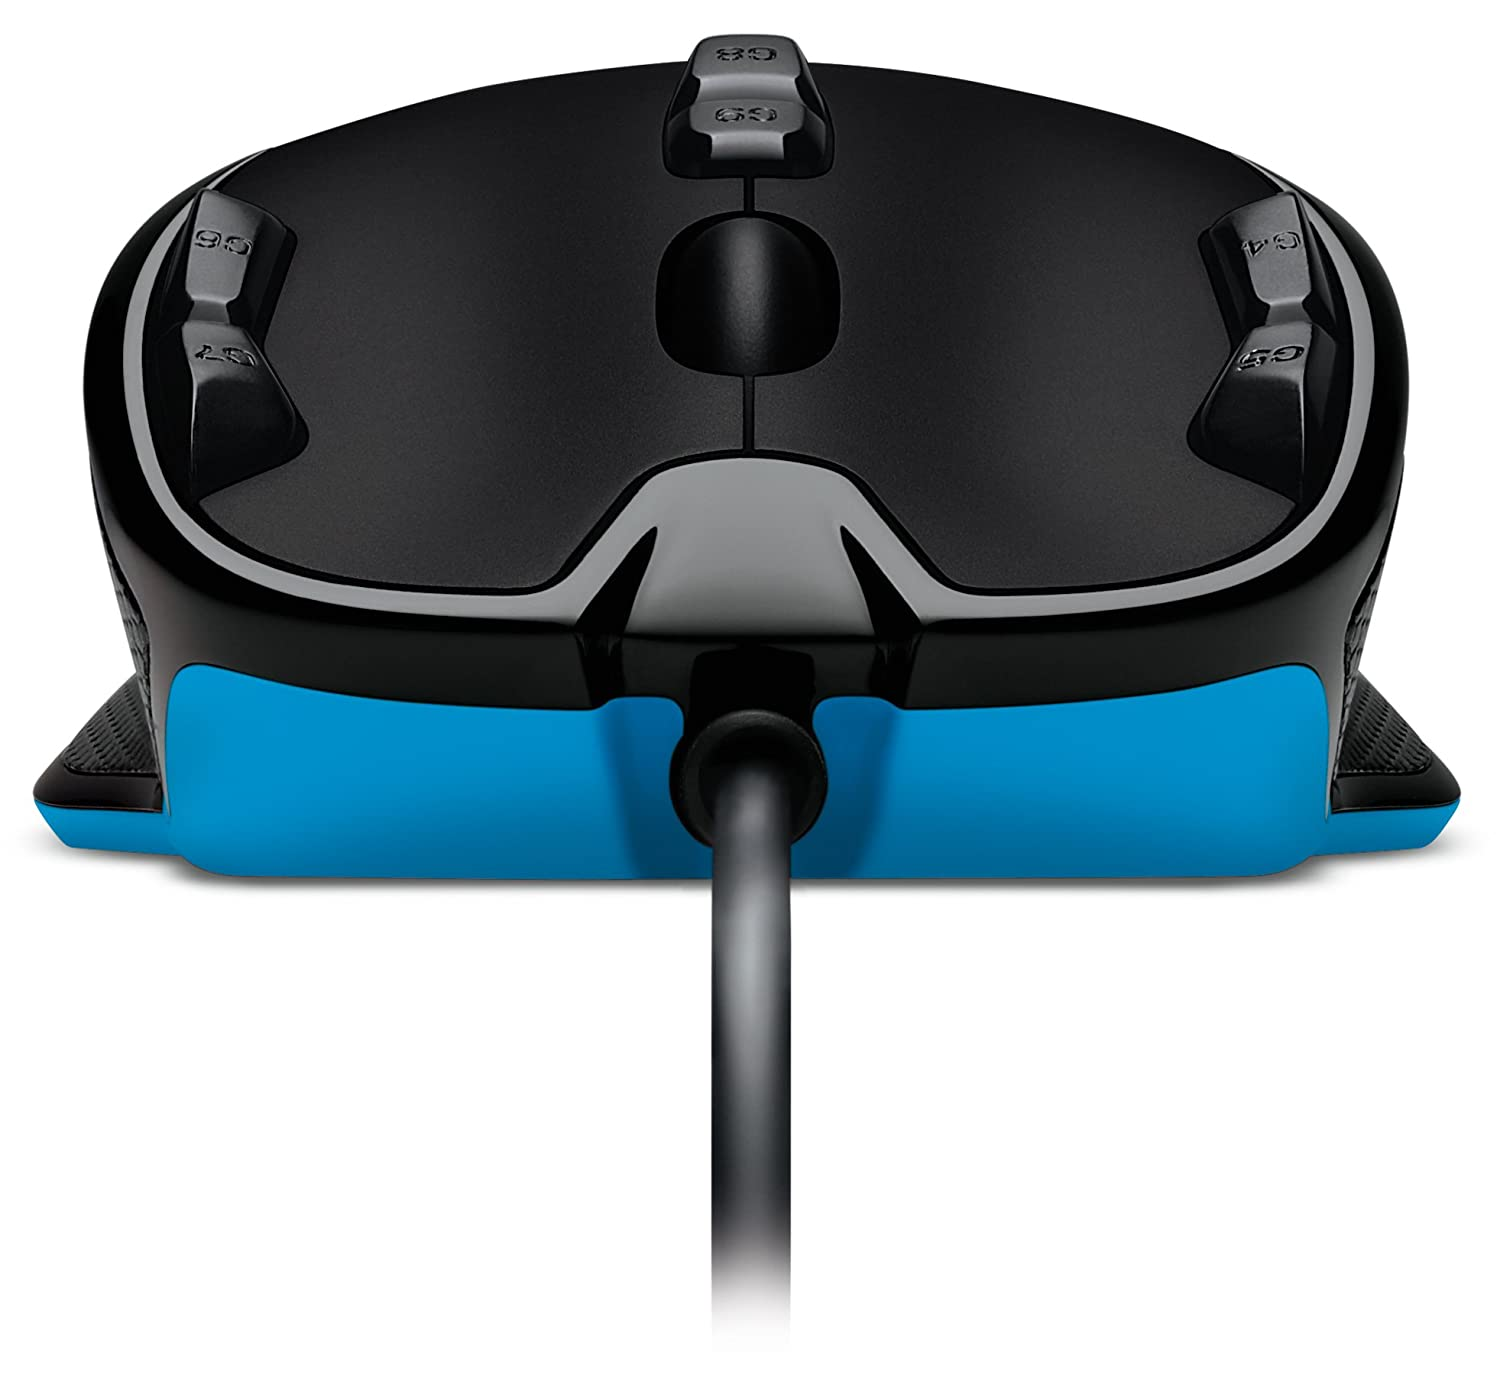 Amazon Logitech G300s Optical Ambidextrous Gaming Mouse – 9 Programmable Buttons board Memory puters & Accessories